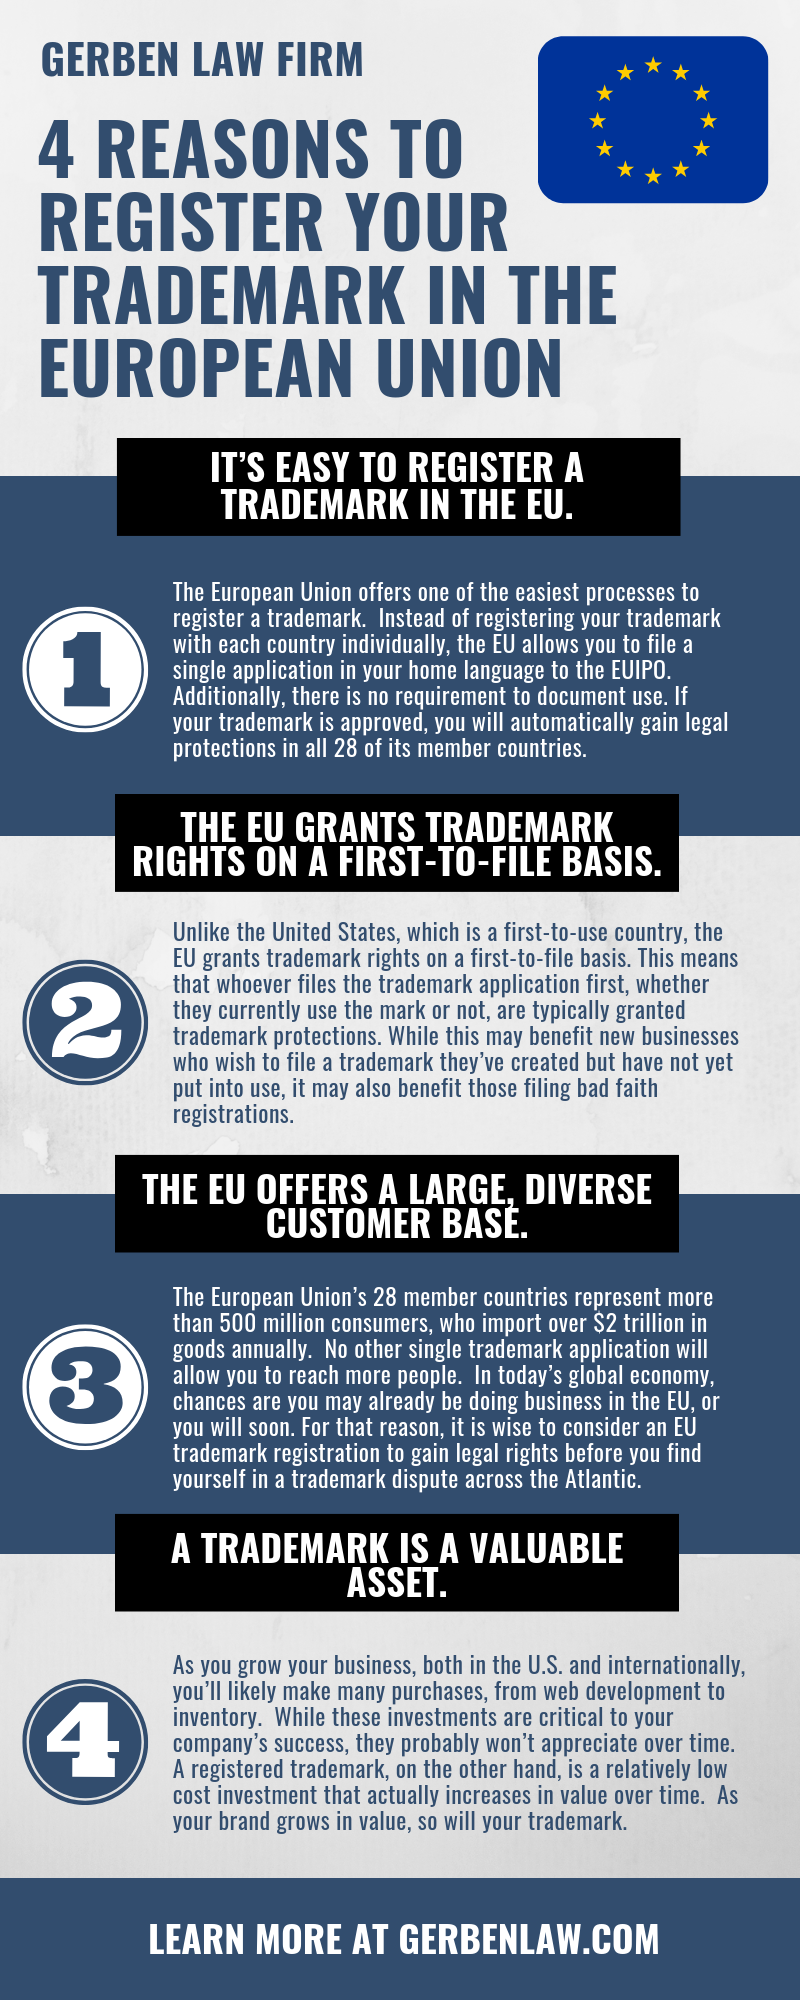 4 reasons to register your trademark in the European Union.